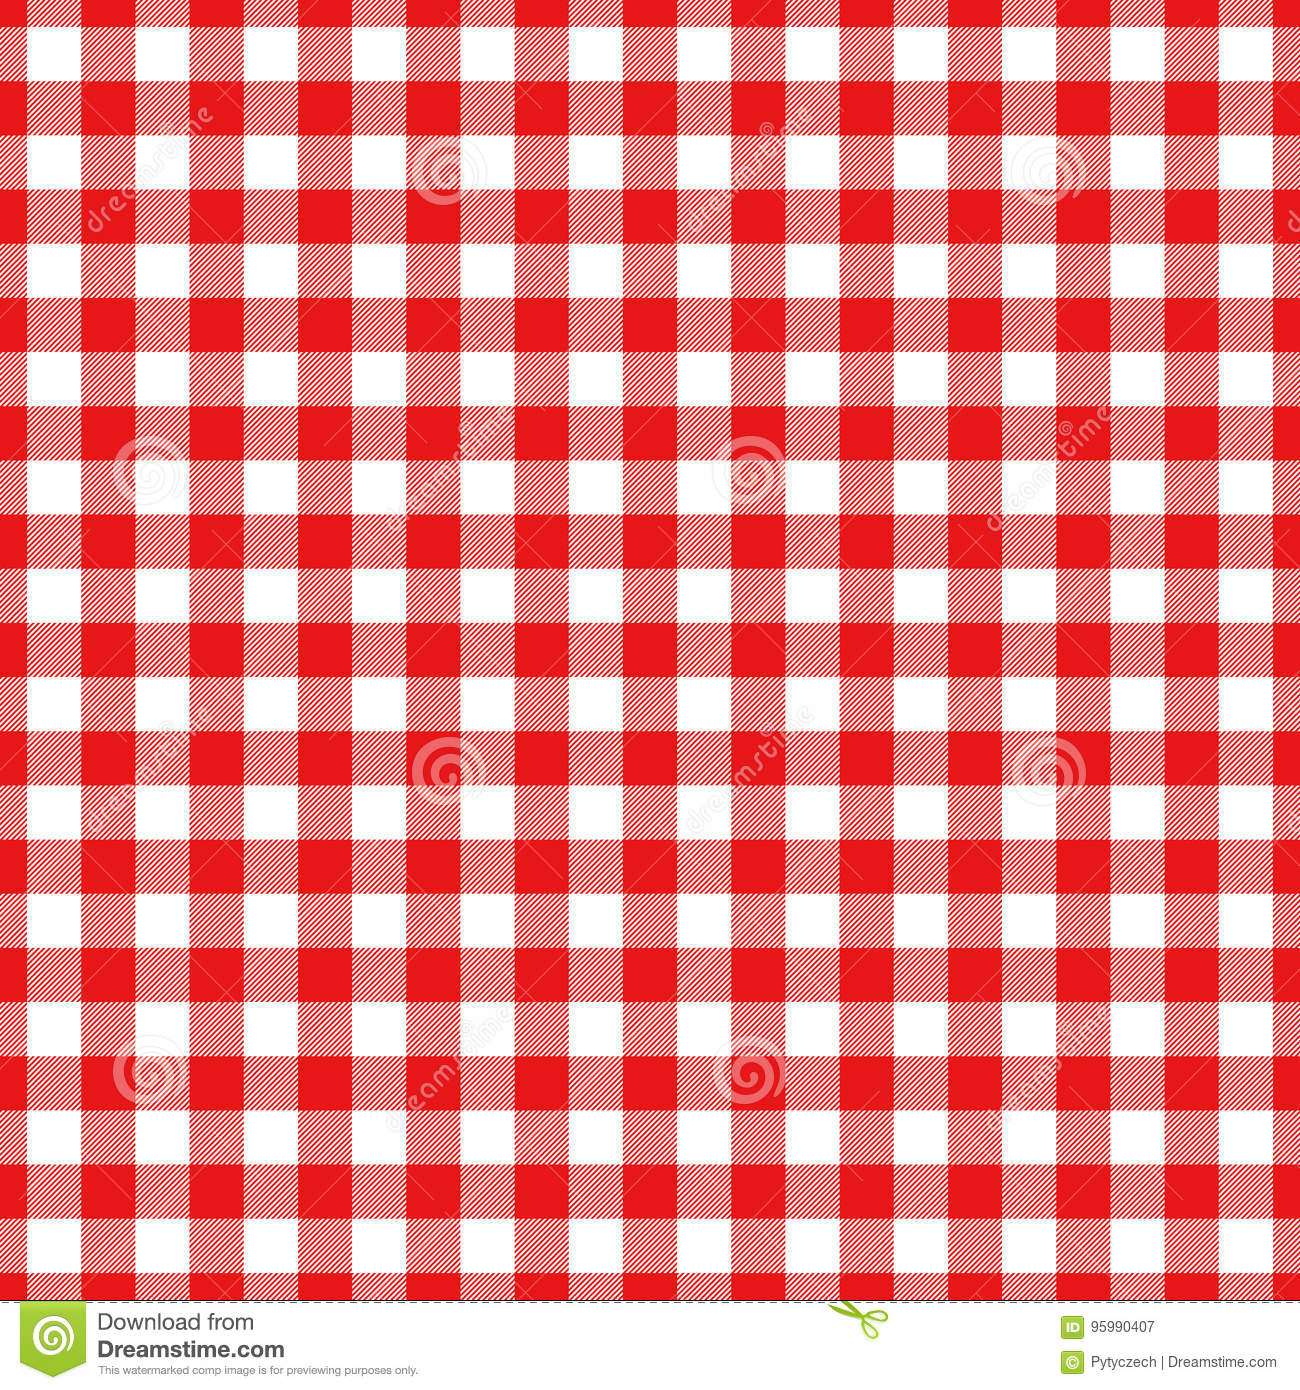 Lumberjack plaid pattern in red and black. Seamless vector pattern.